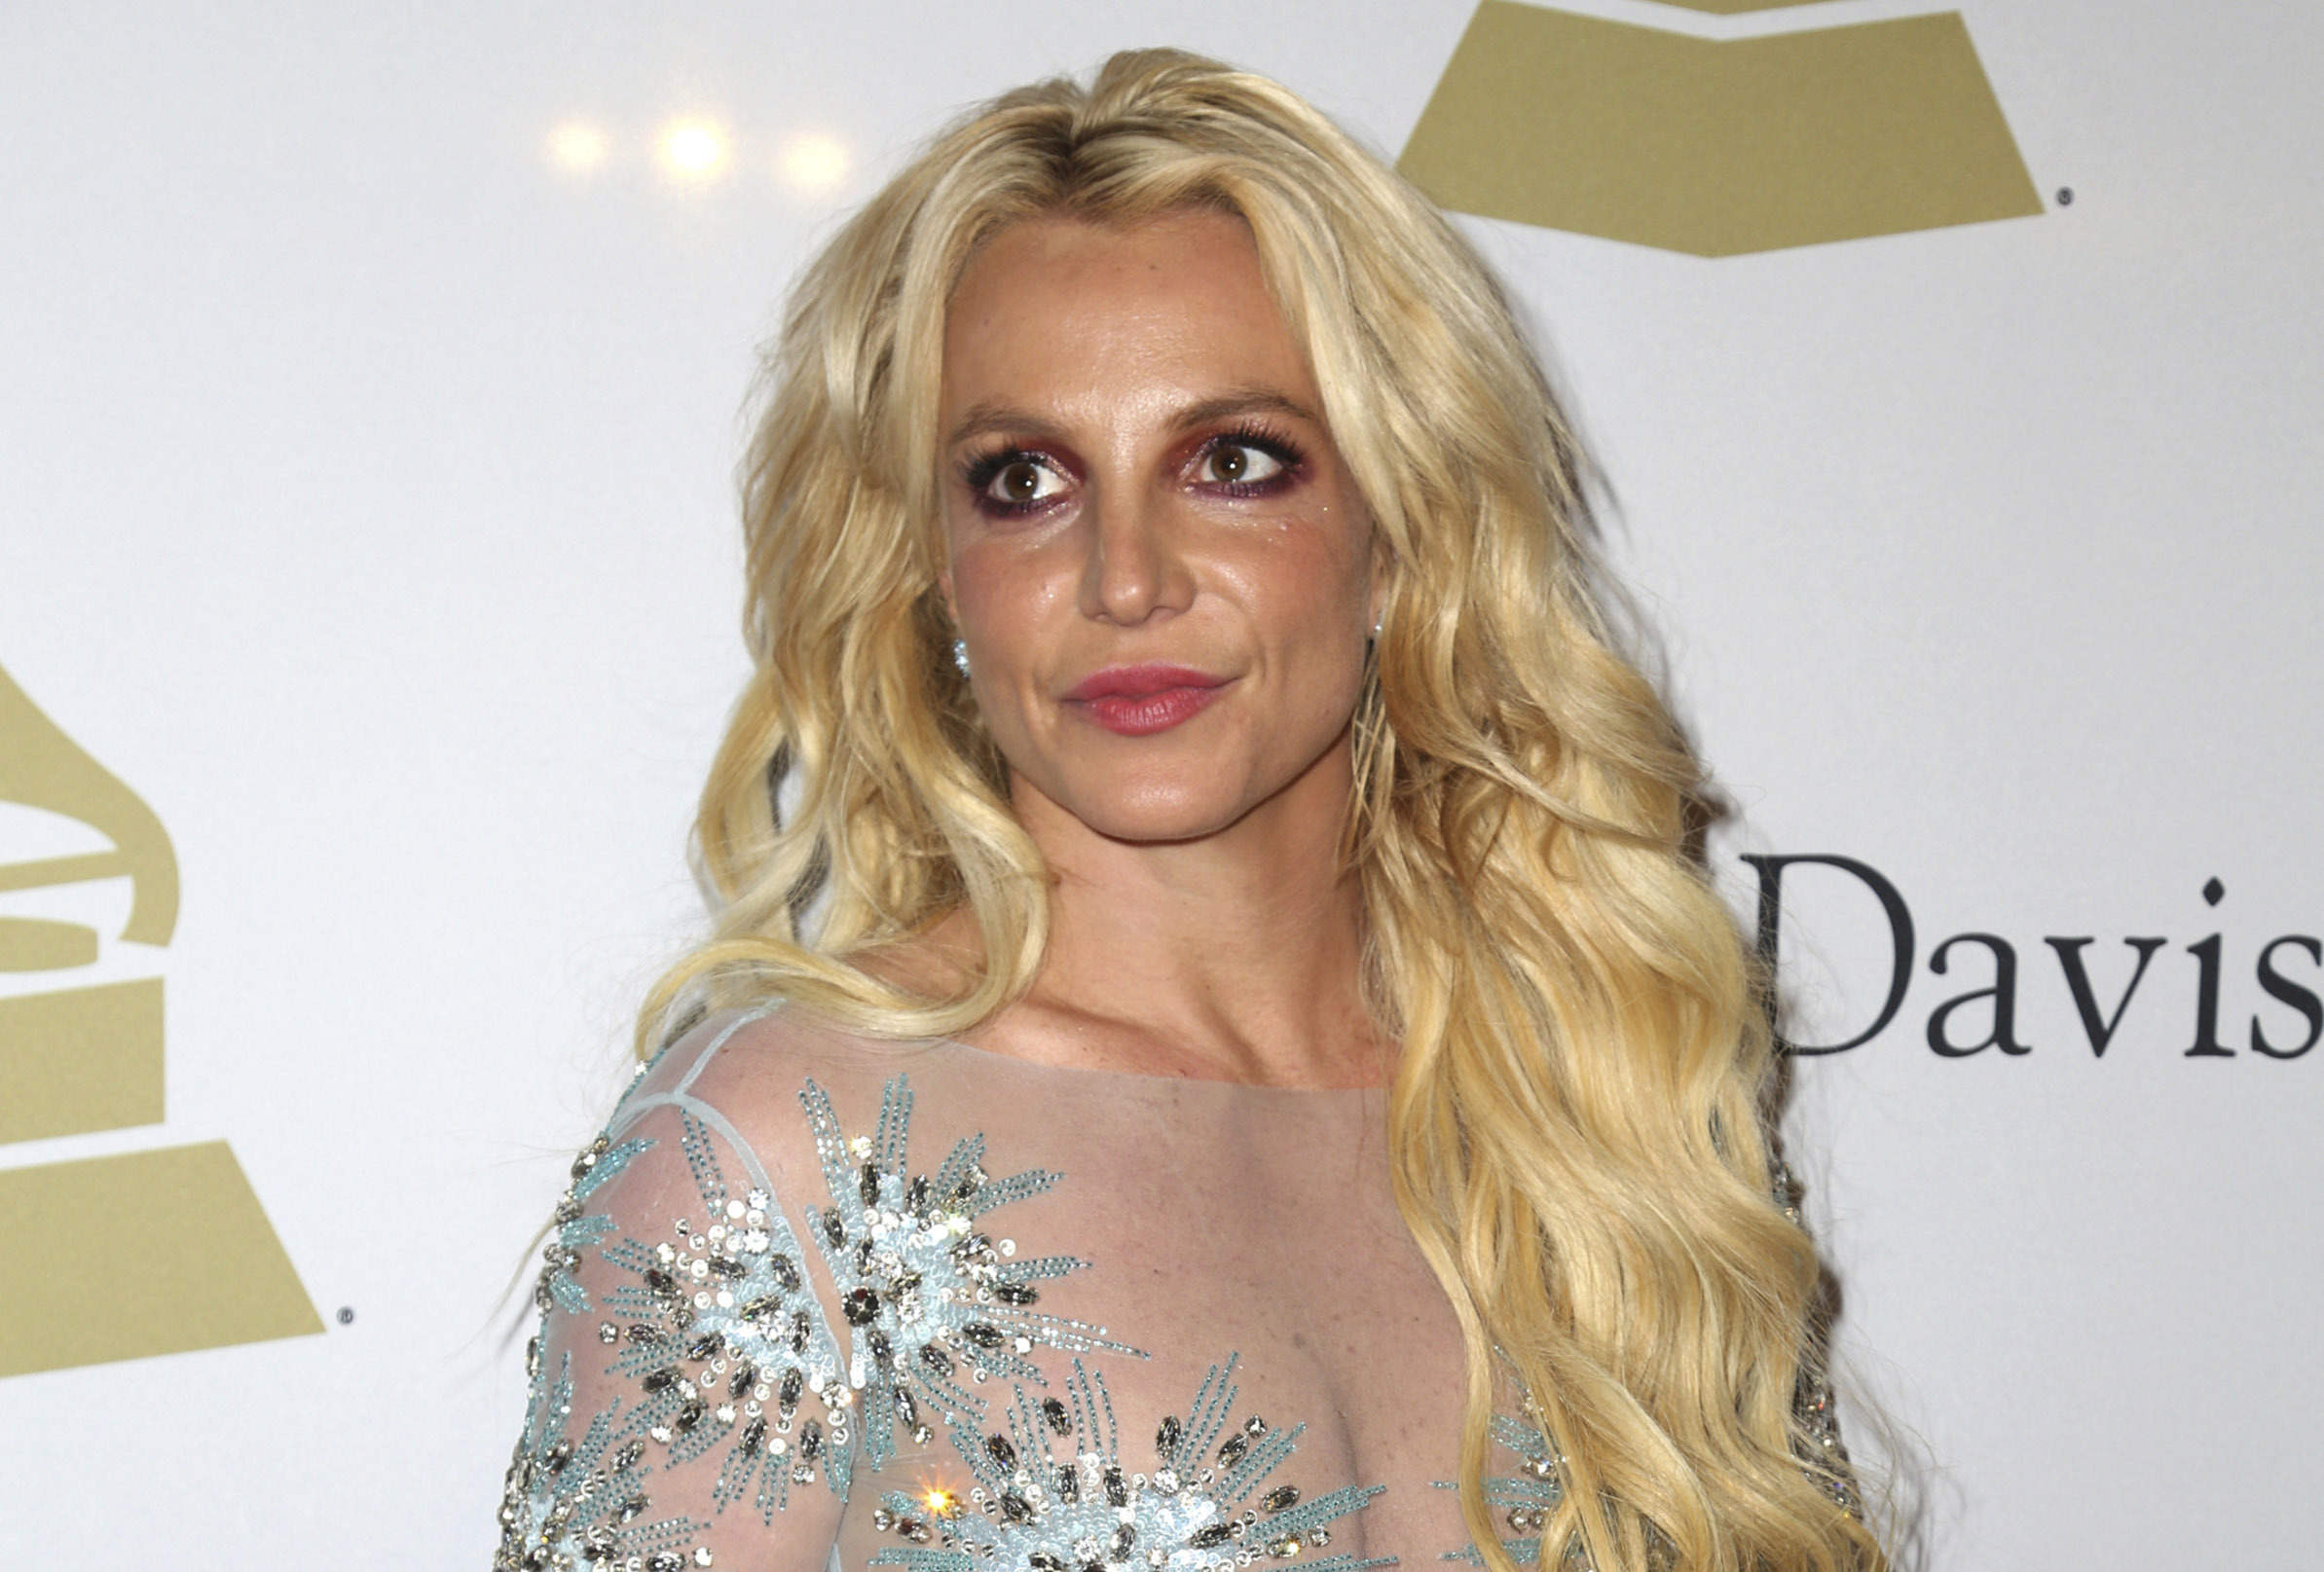 Judge denies November request to remove Britney Spears' father as her co-conservator